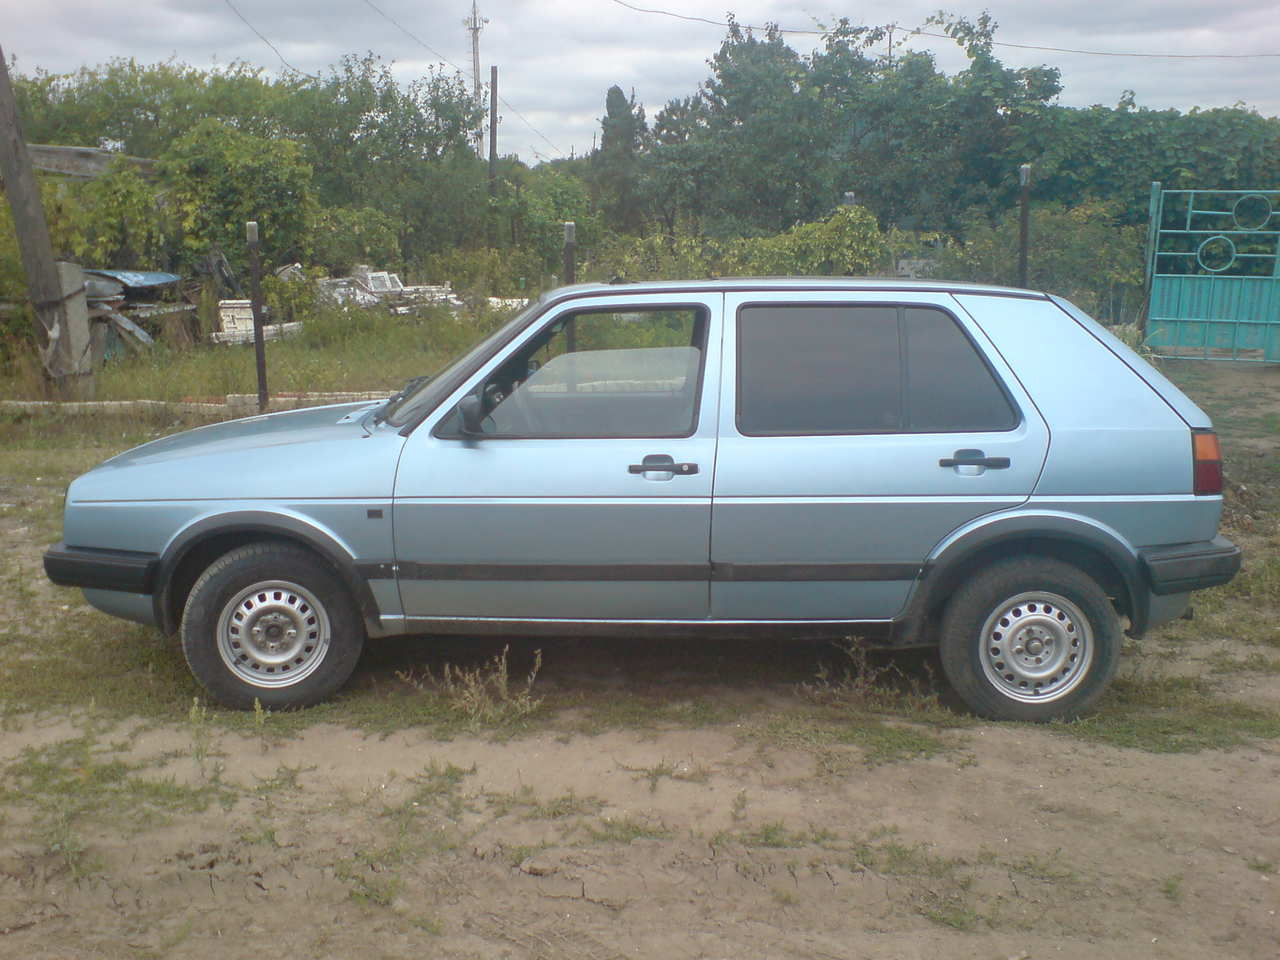 1989 volkswagen golf pictures 1 6l gasoline ff manual for sale rh cars directory net  vw golf 2 1989 service manual